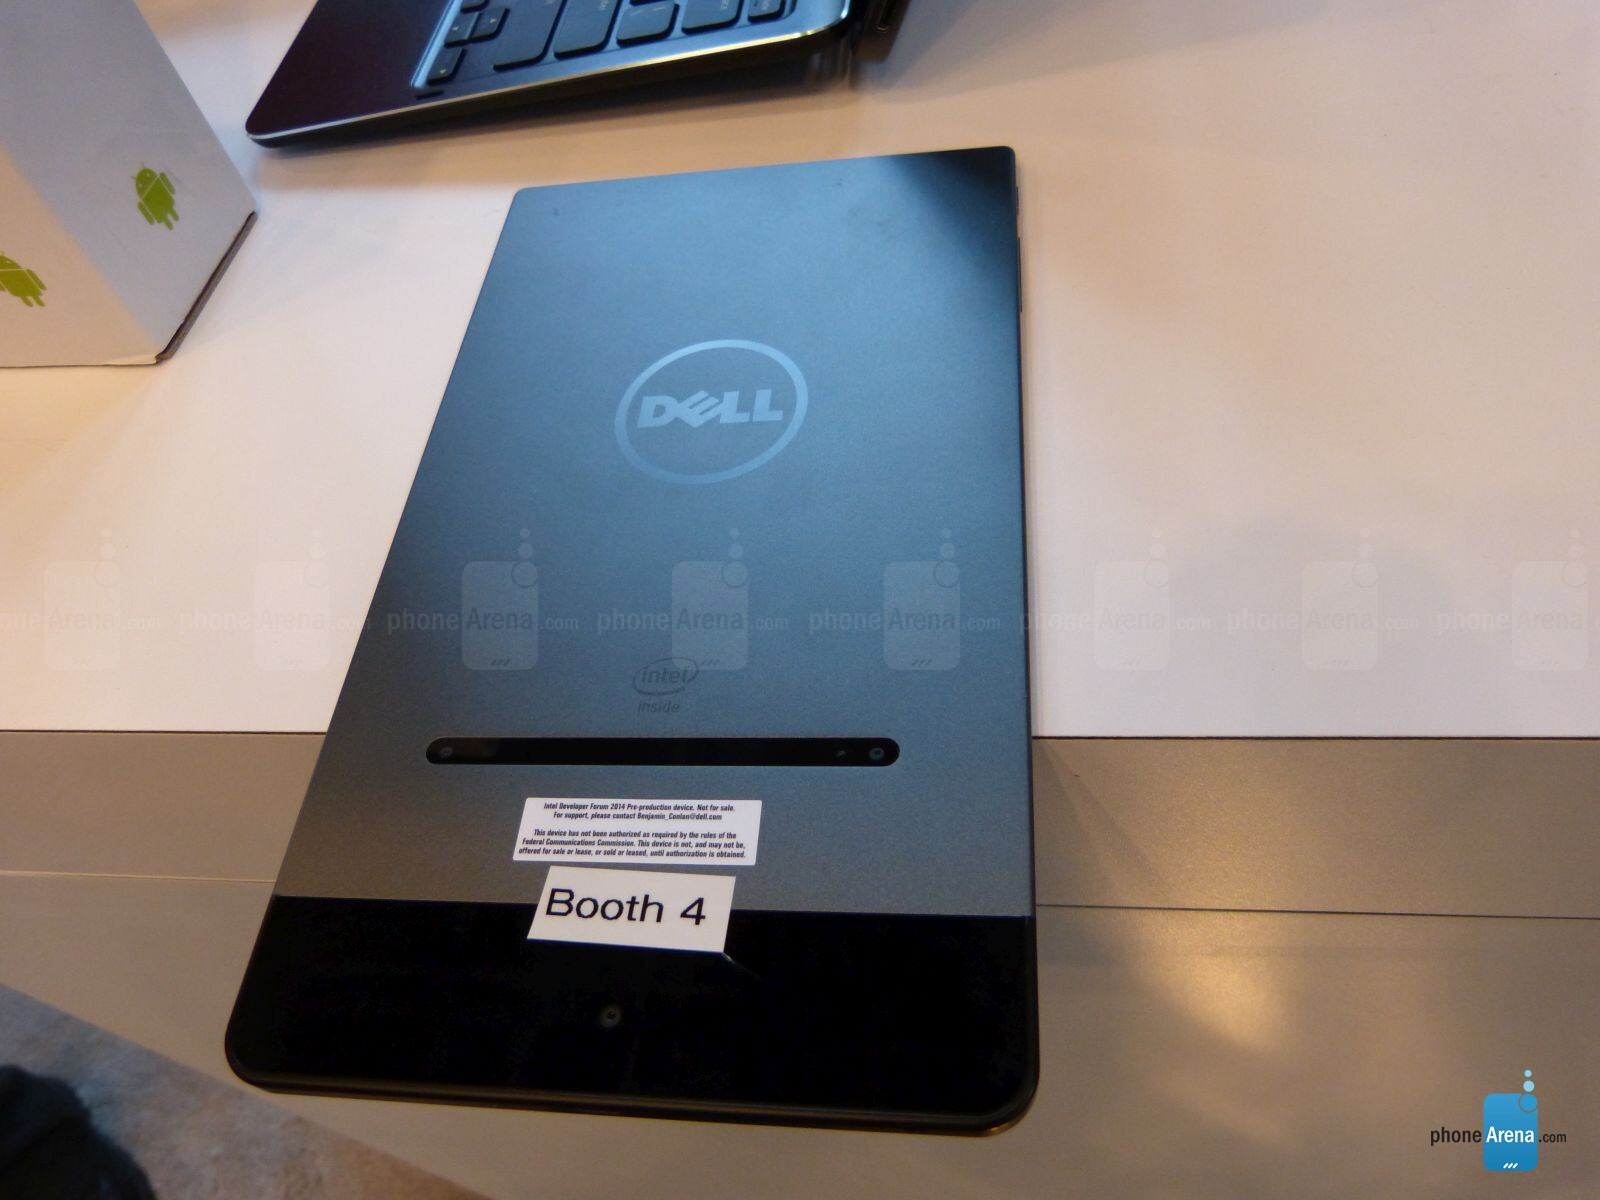 The Dell Venue 8 7000 Series tablet up close